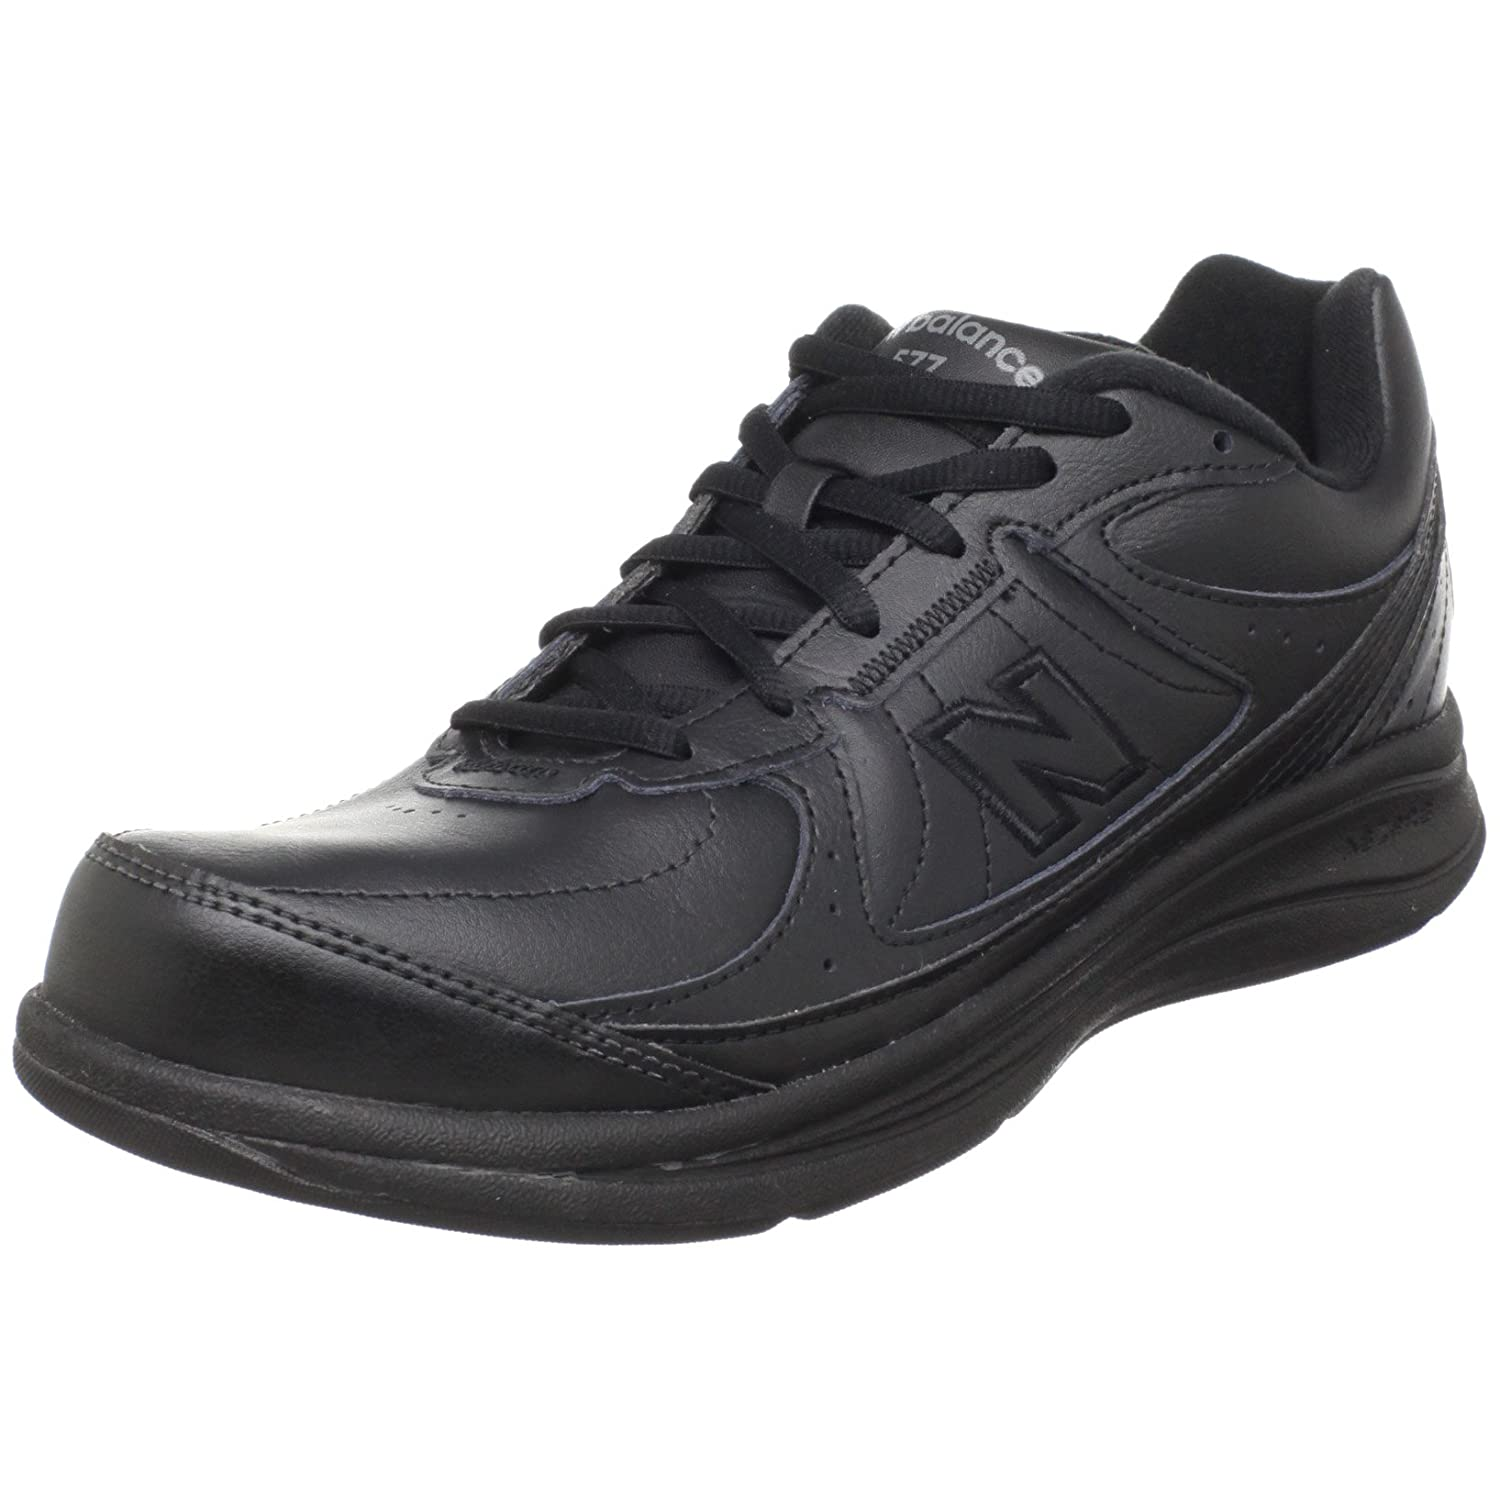 New Balance Women's WW577 Walking Shoe B003UHUKL4 6 D US|Black